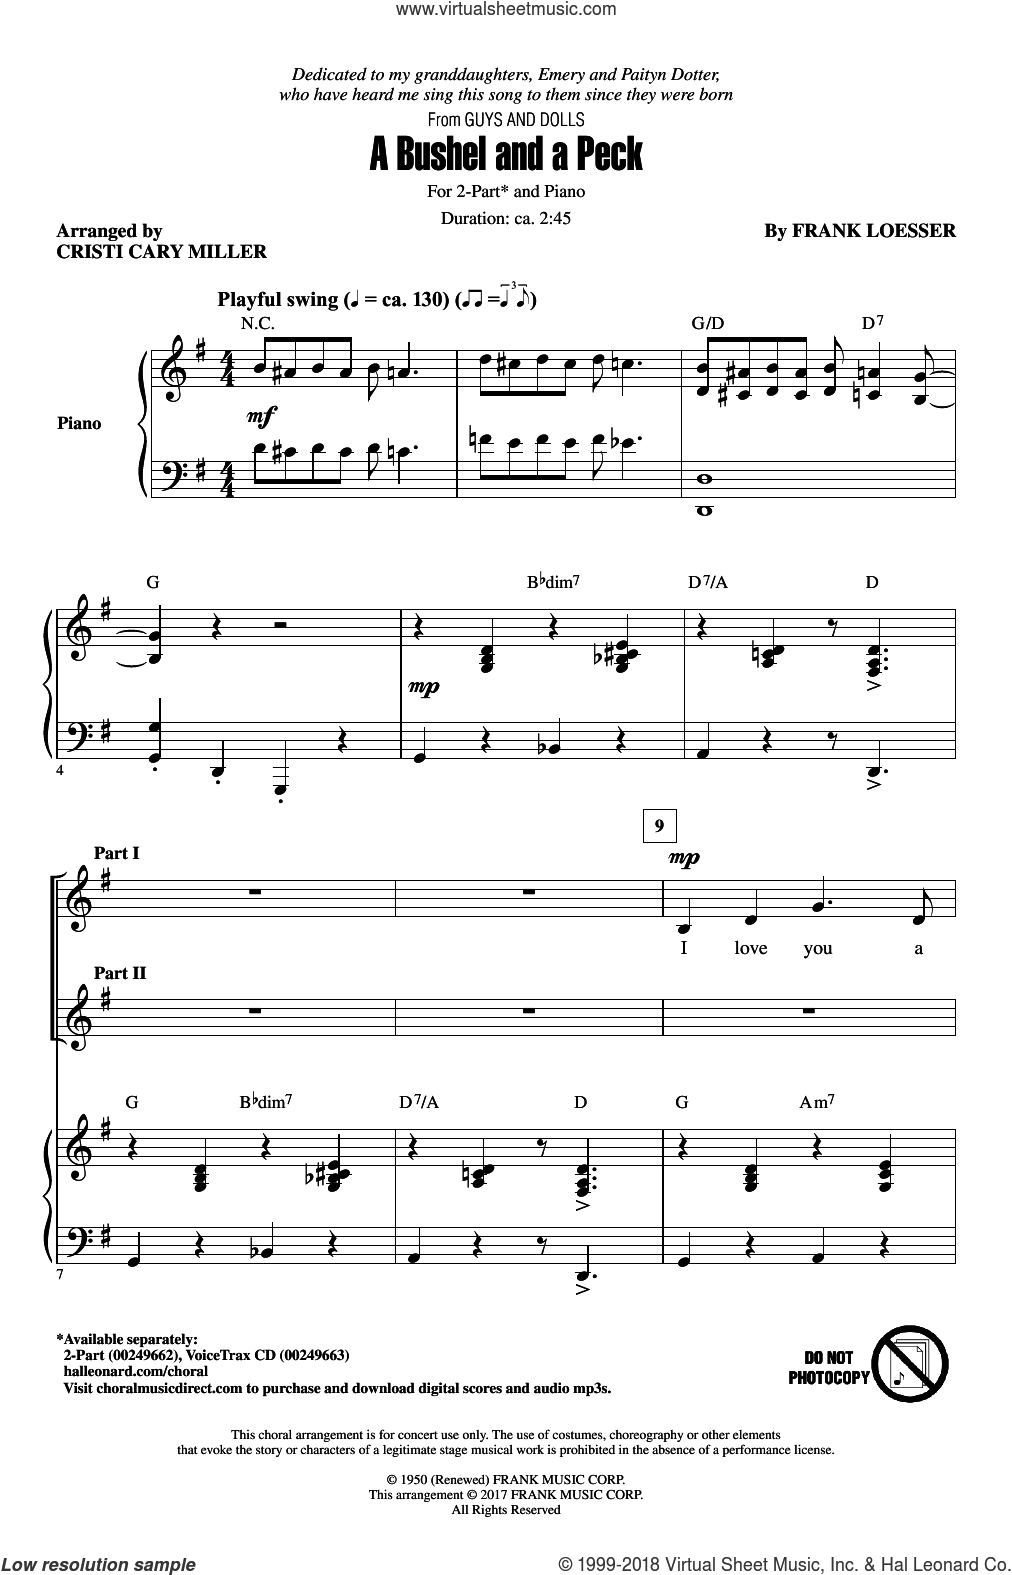 A Bushel And A Peck sheet music for choir (2-Part) by Frank Loesser and Cristi Cary Miller, intermediate duet